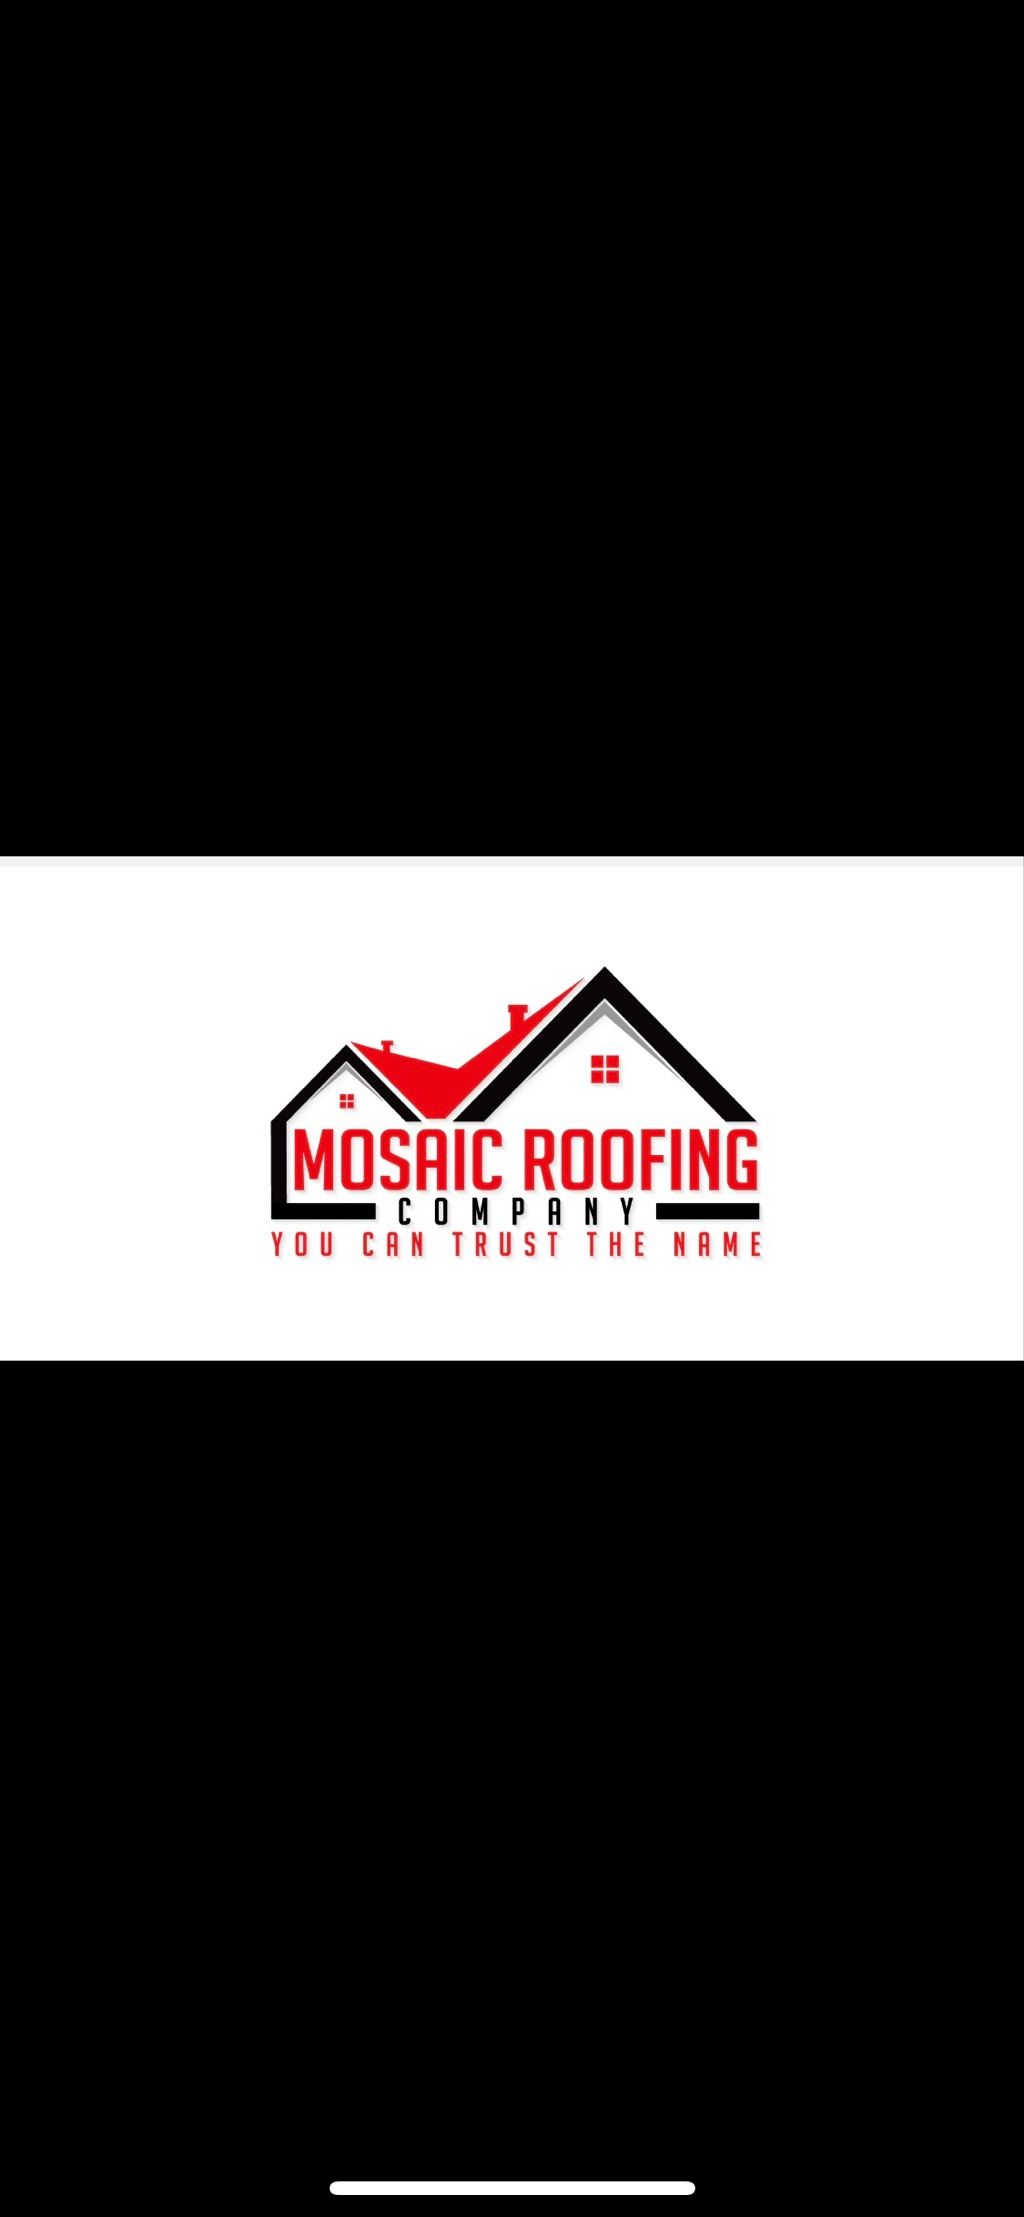 Mosaic Roofing Company